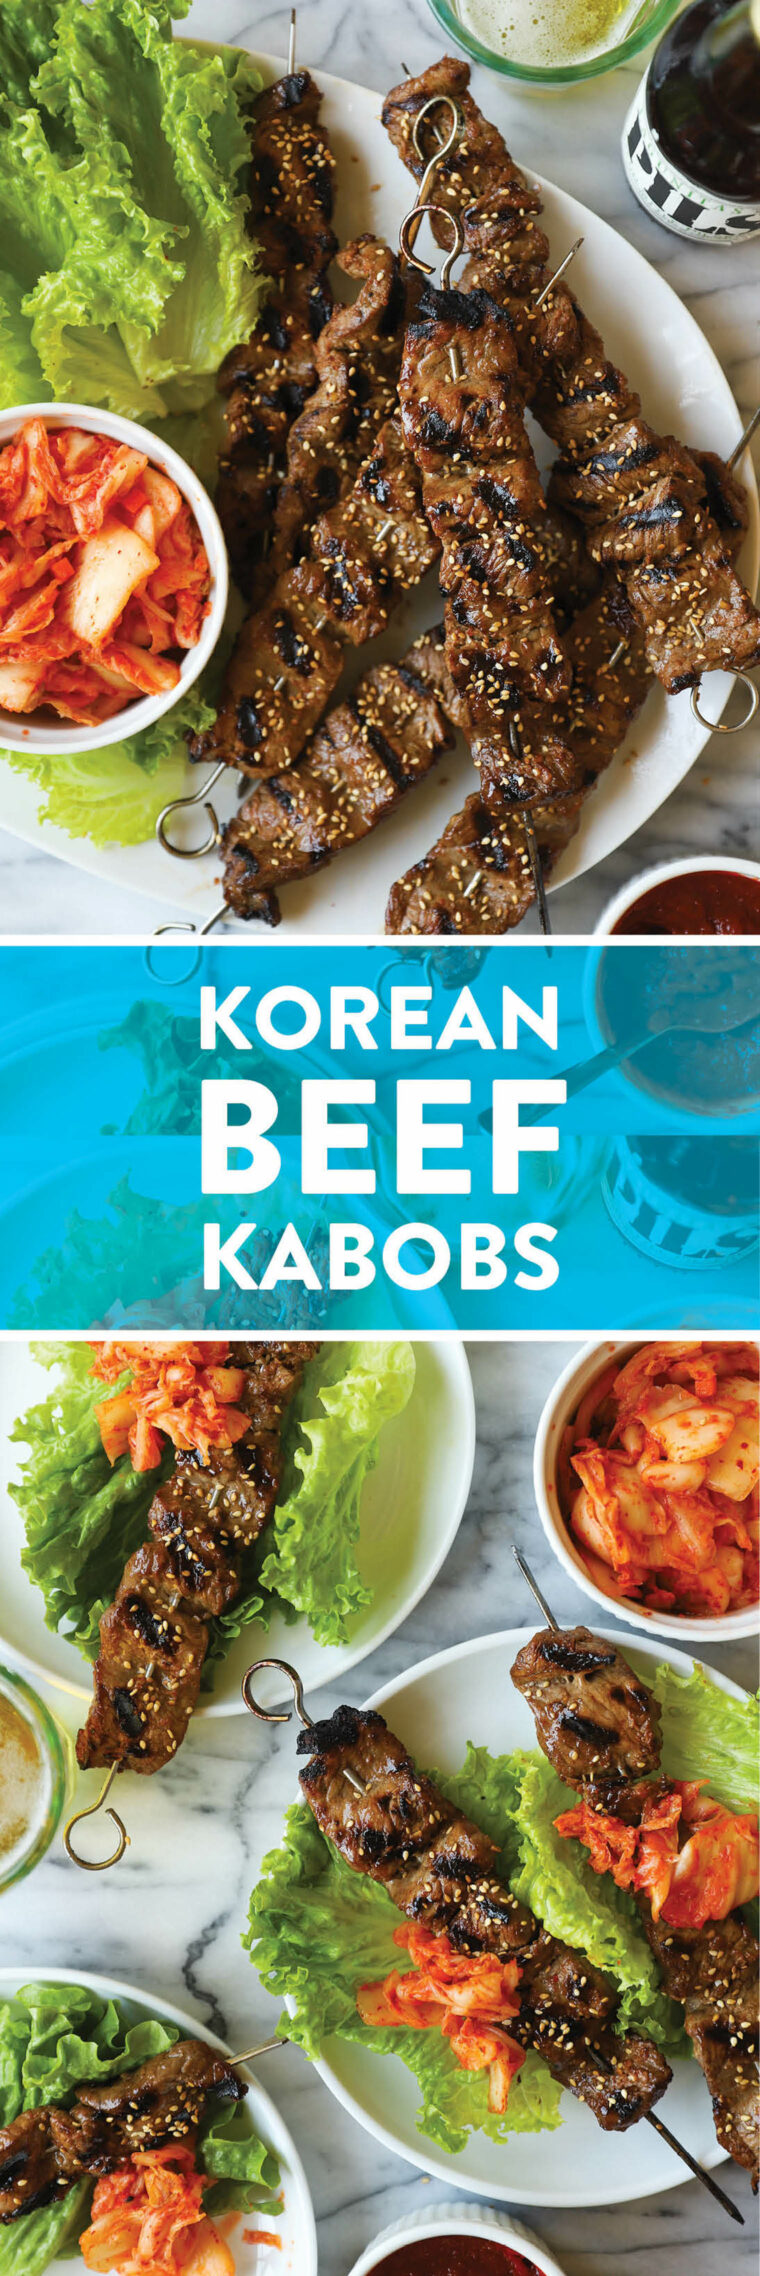 Korean Beef Kabobs - Everyone's favorite Korean BBQ made right at home with the most perfect and easy marinade ever, grilled to perfection.